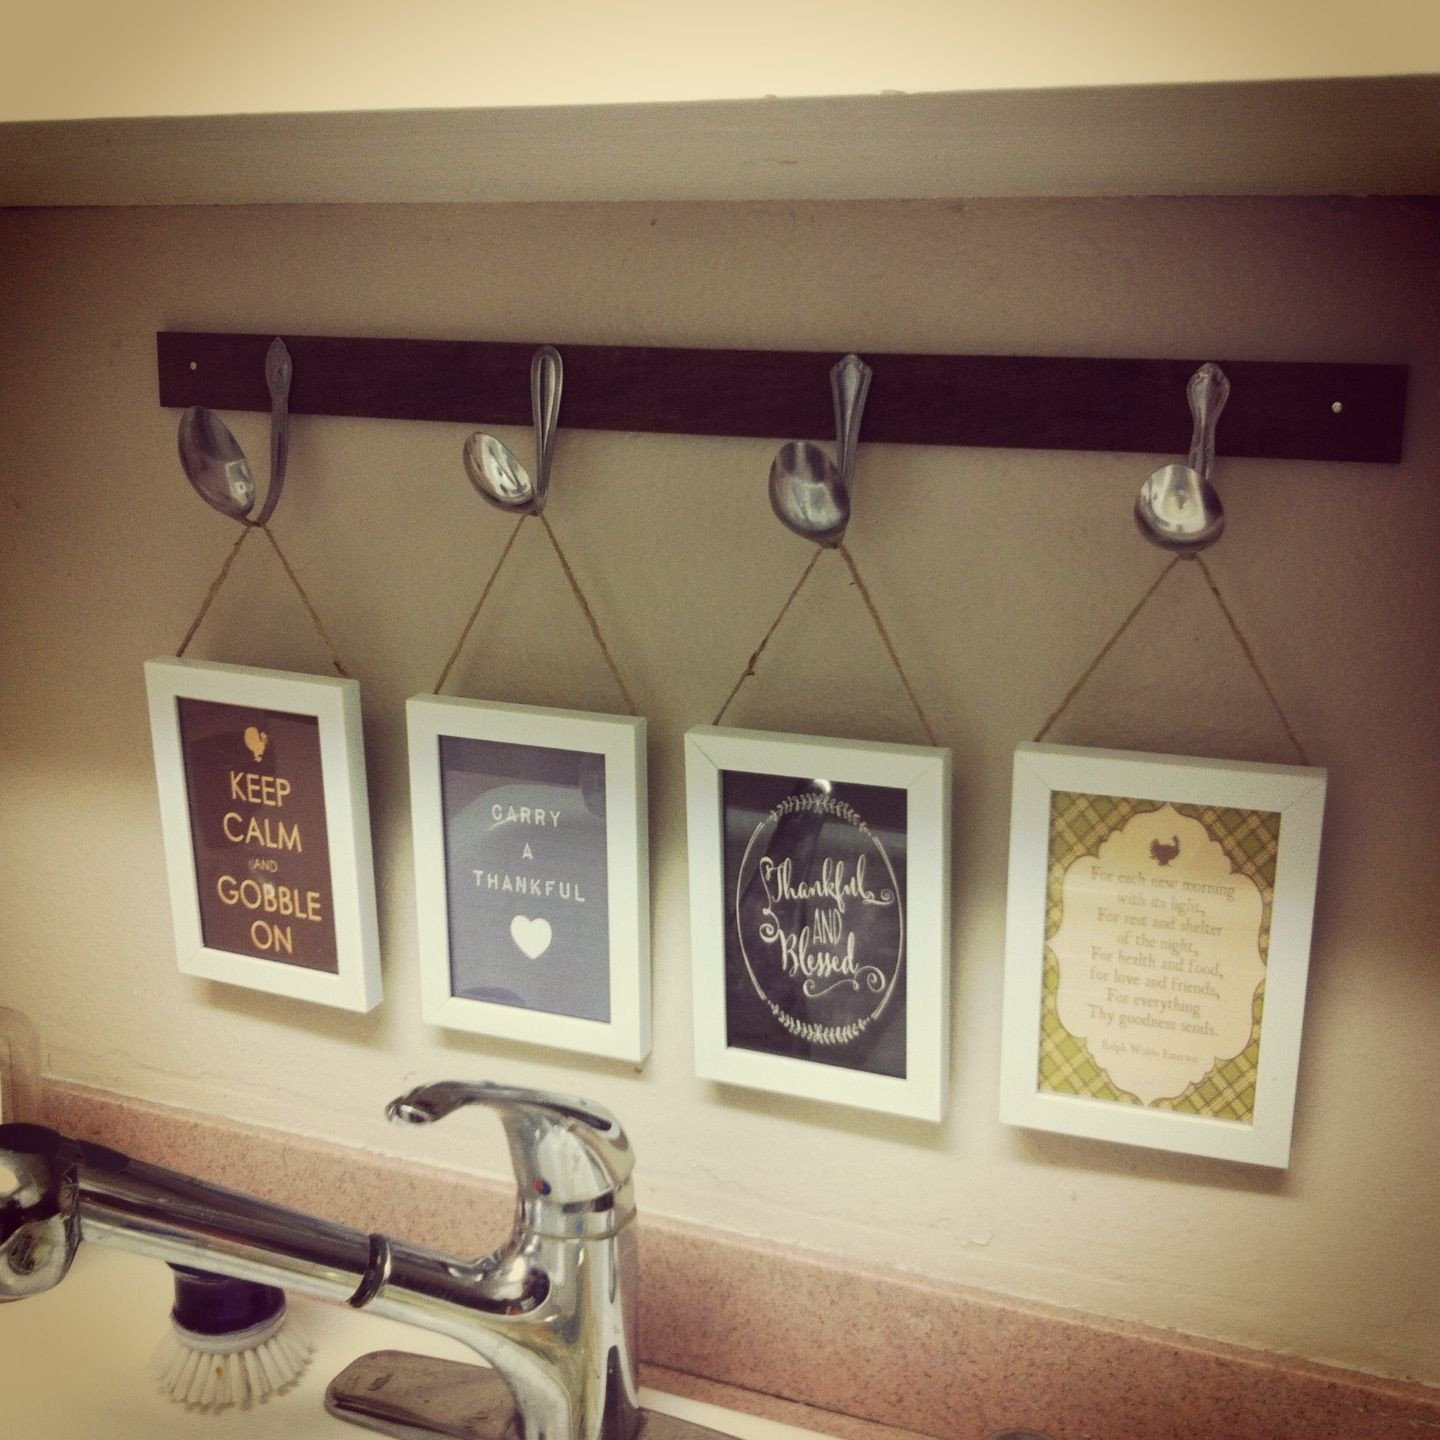 Kitchen Wall Decor Ideas Diy Inspirational $10 Diy Kitchen Decor Project $1 Pine From Home Depot Stained 25 Cent Thrift Store Spoons